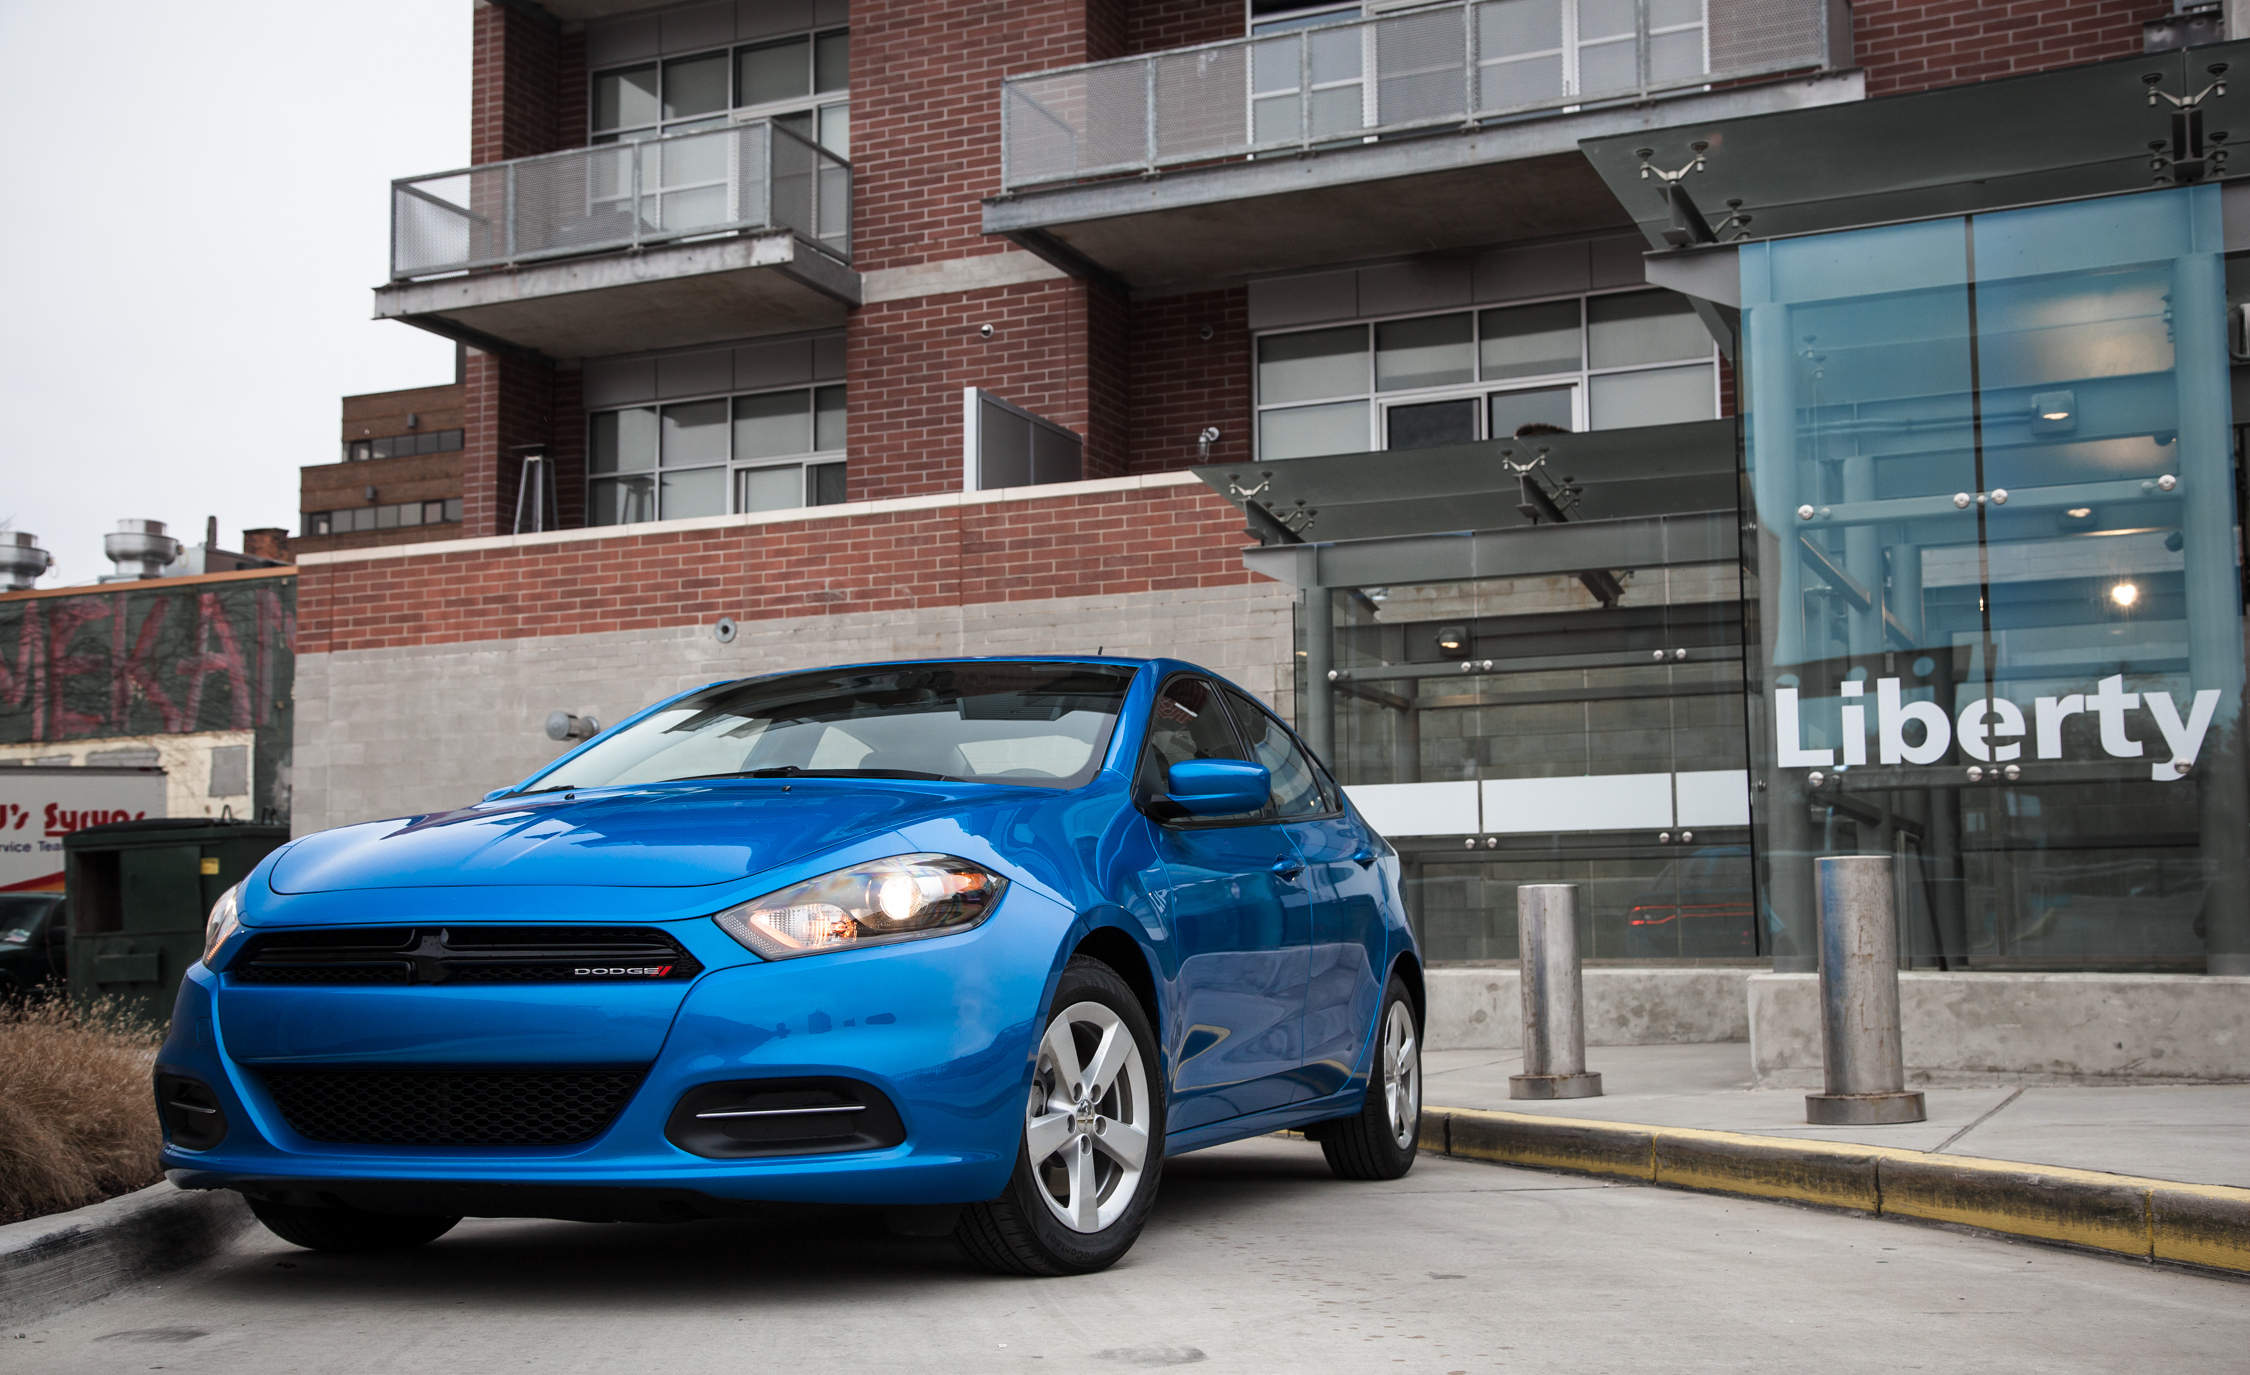 2015 Dodge Dart SXT (View 14 of 14)